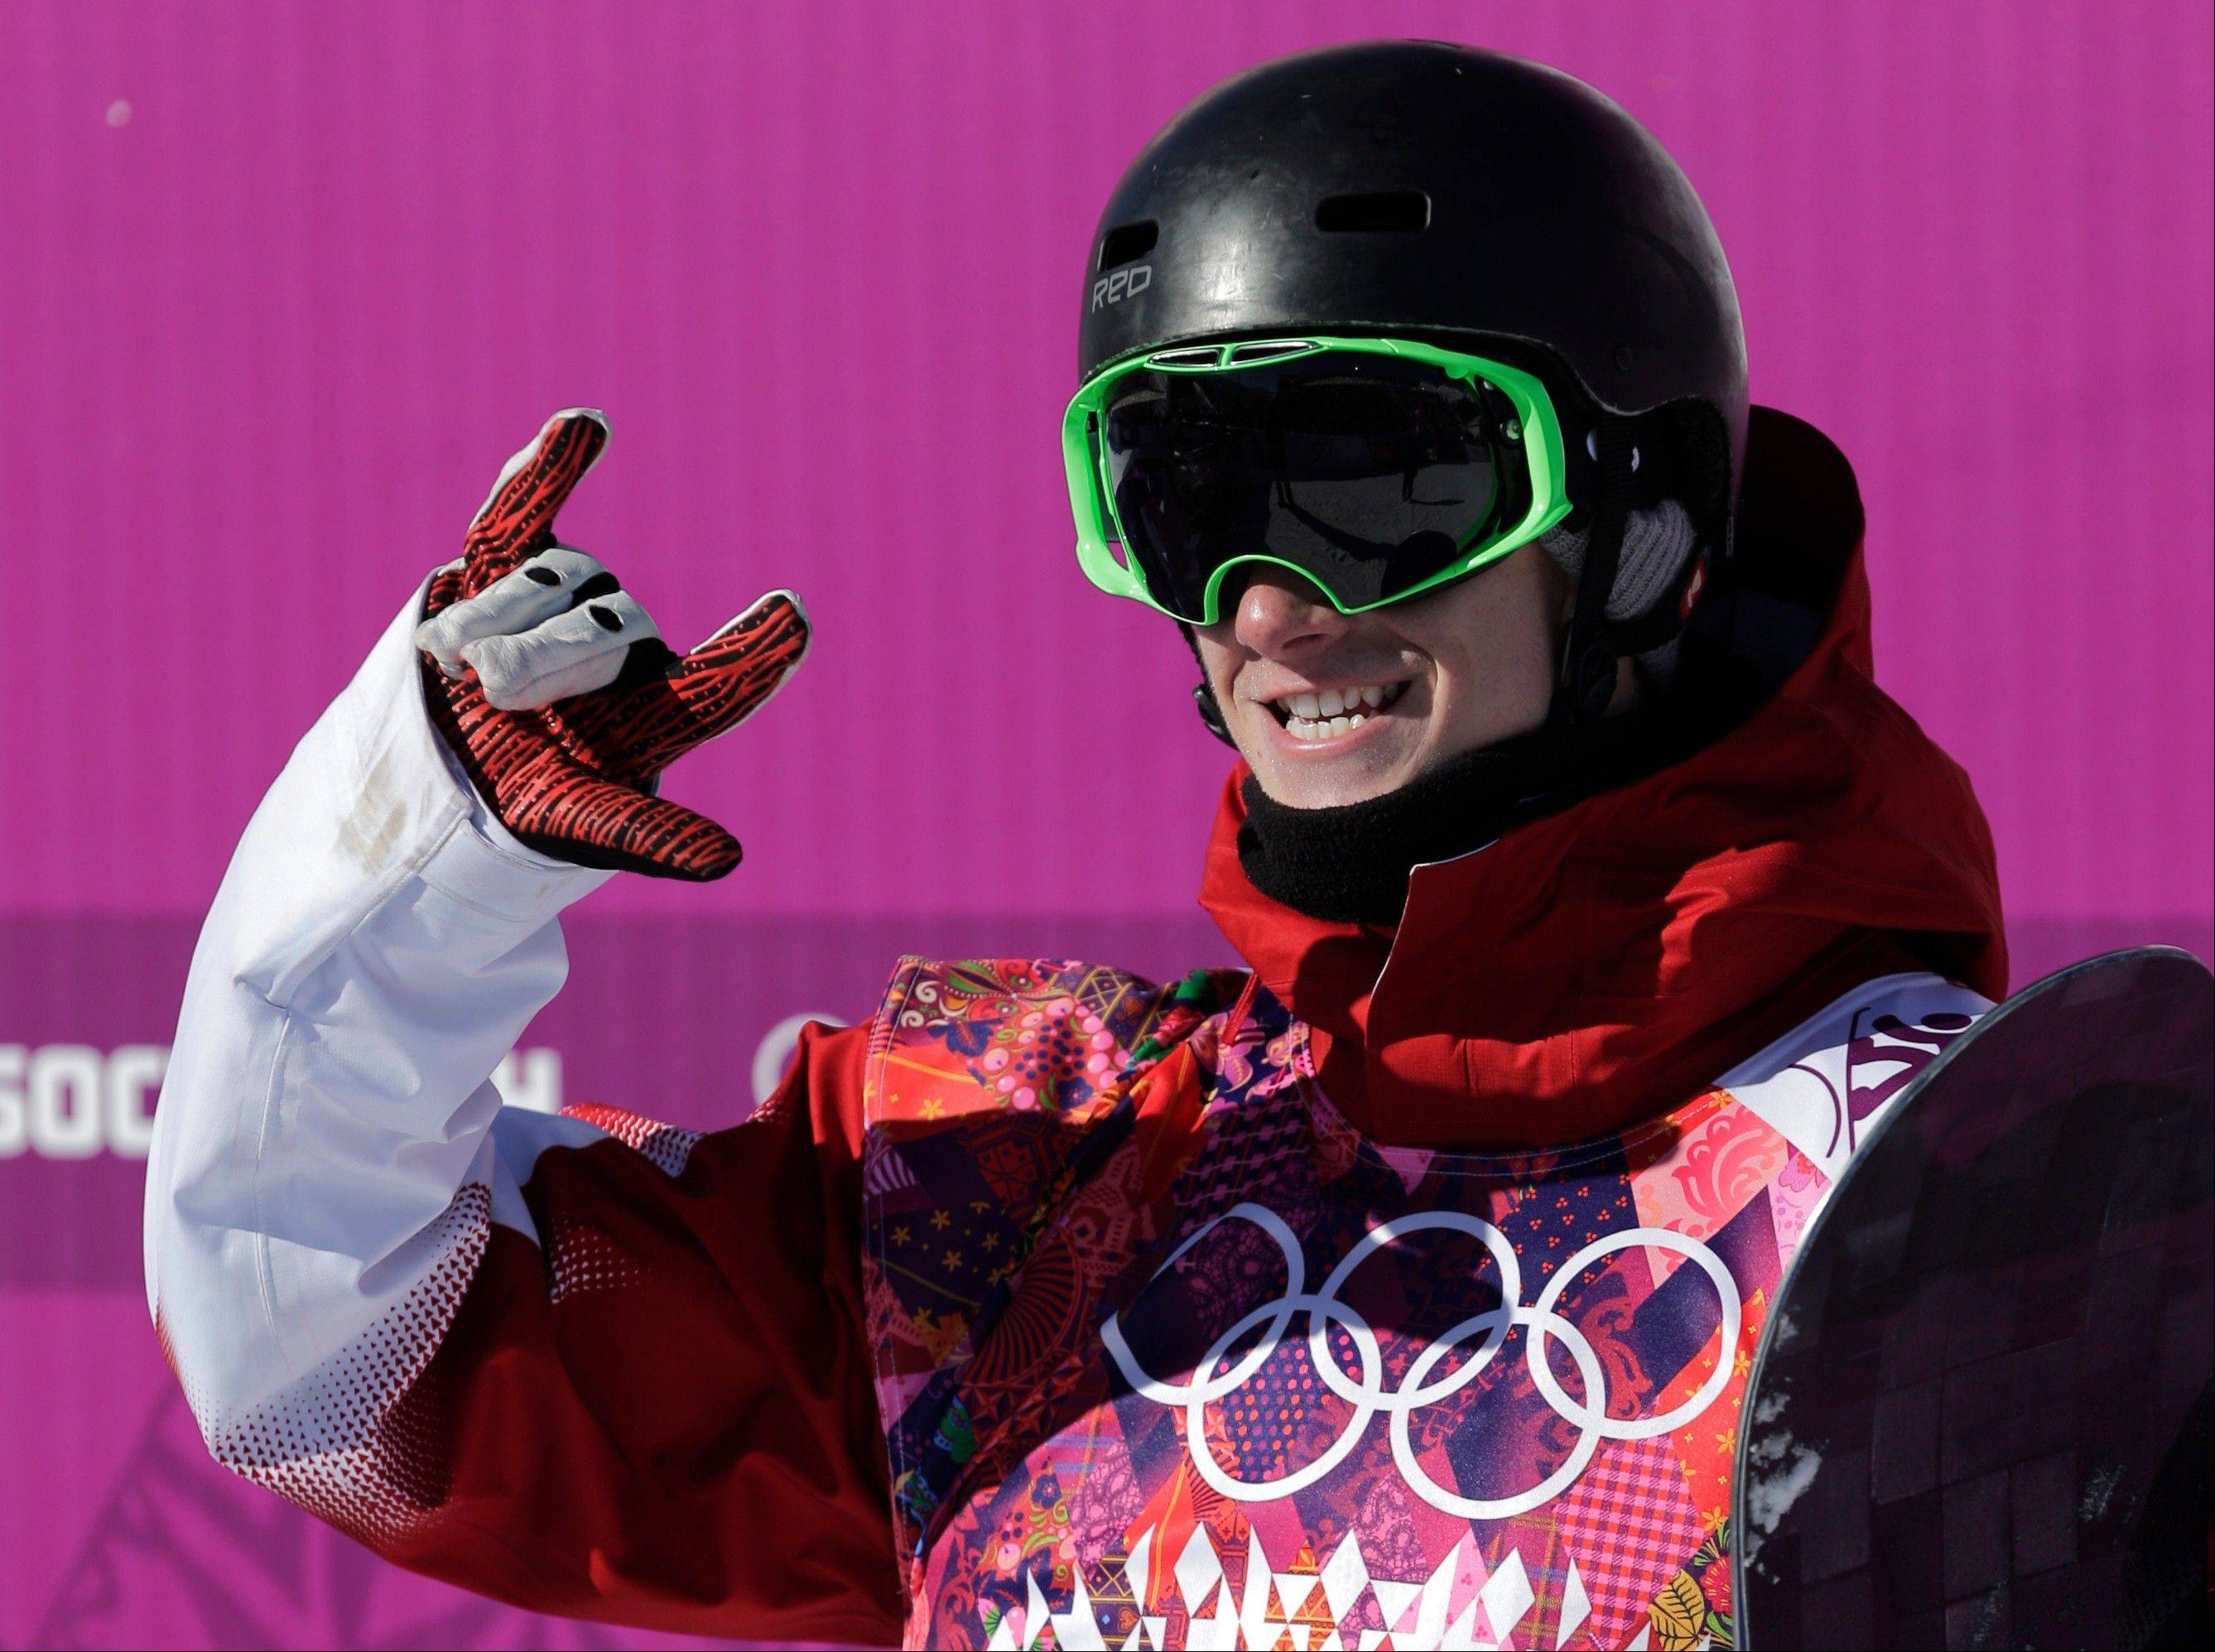 Canadian Parrot takes lead in Olympic debut of slopestyle